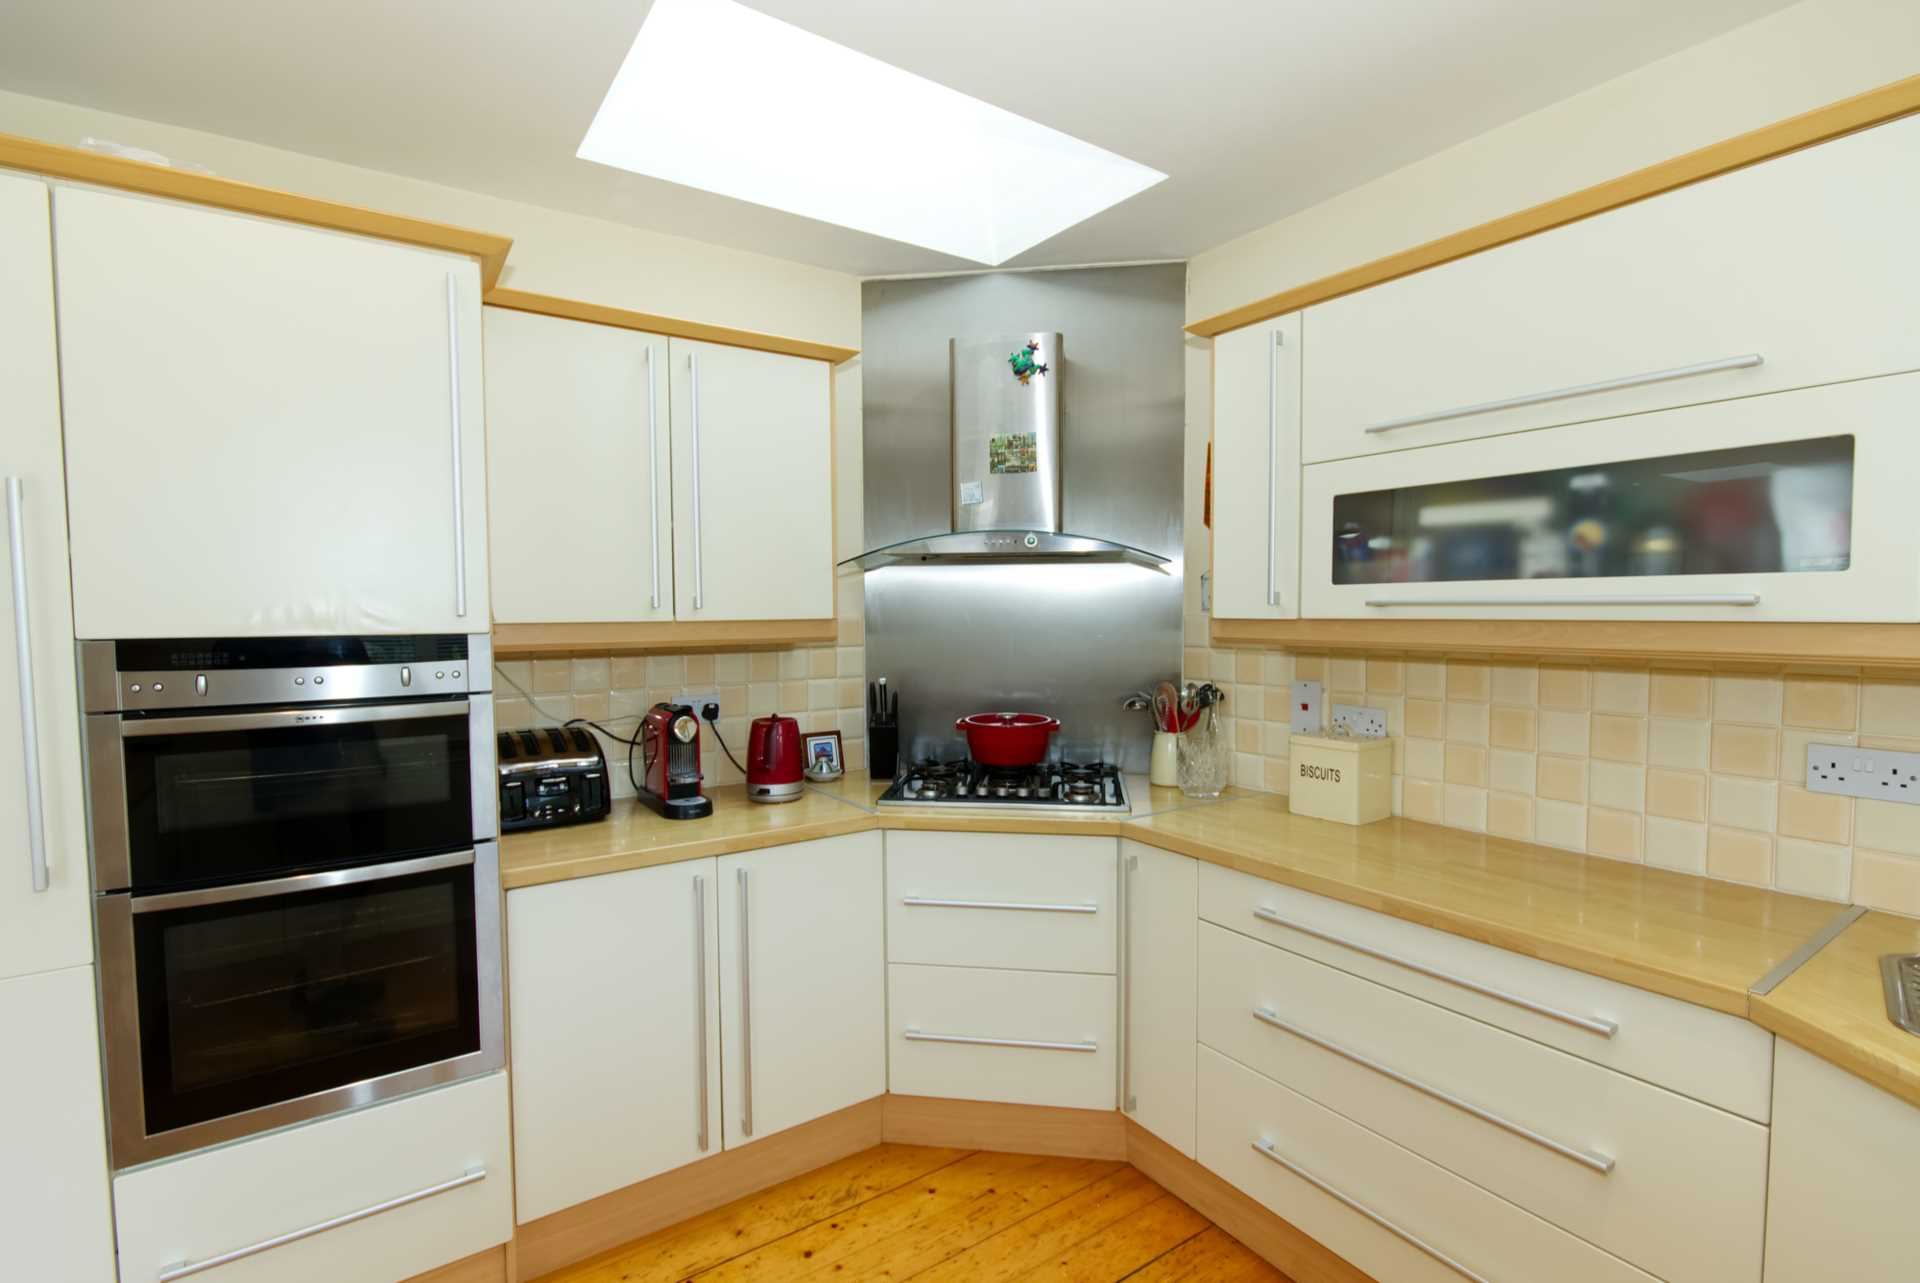 186 Kimmage Road West, Kimmage, Dublin 12, Image 5